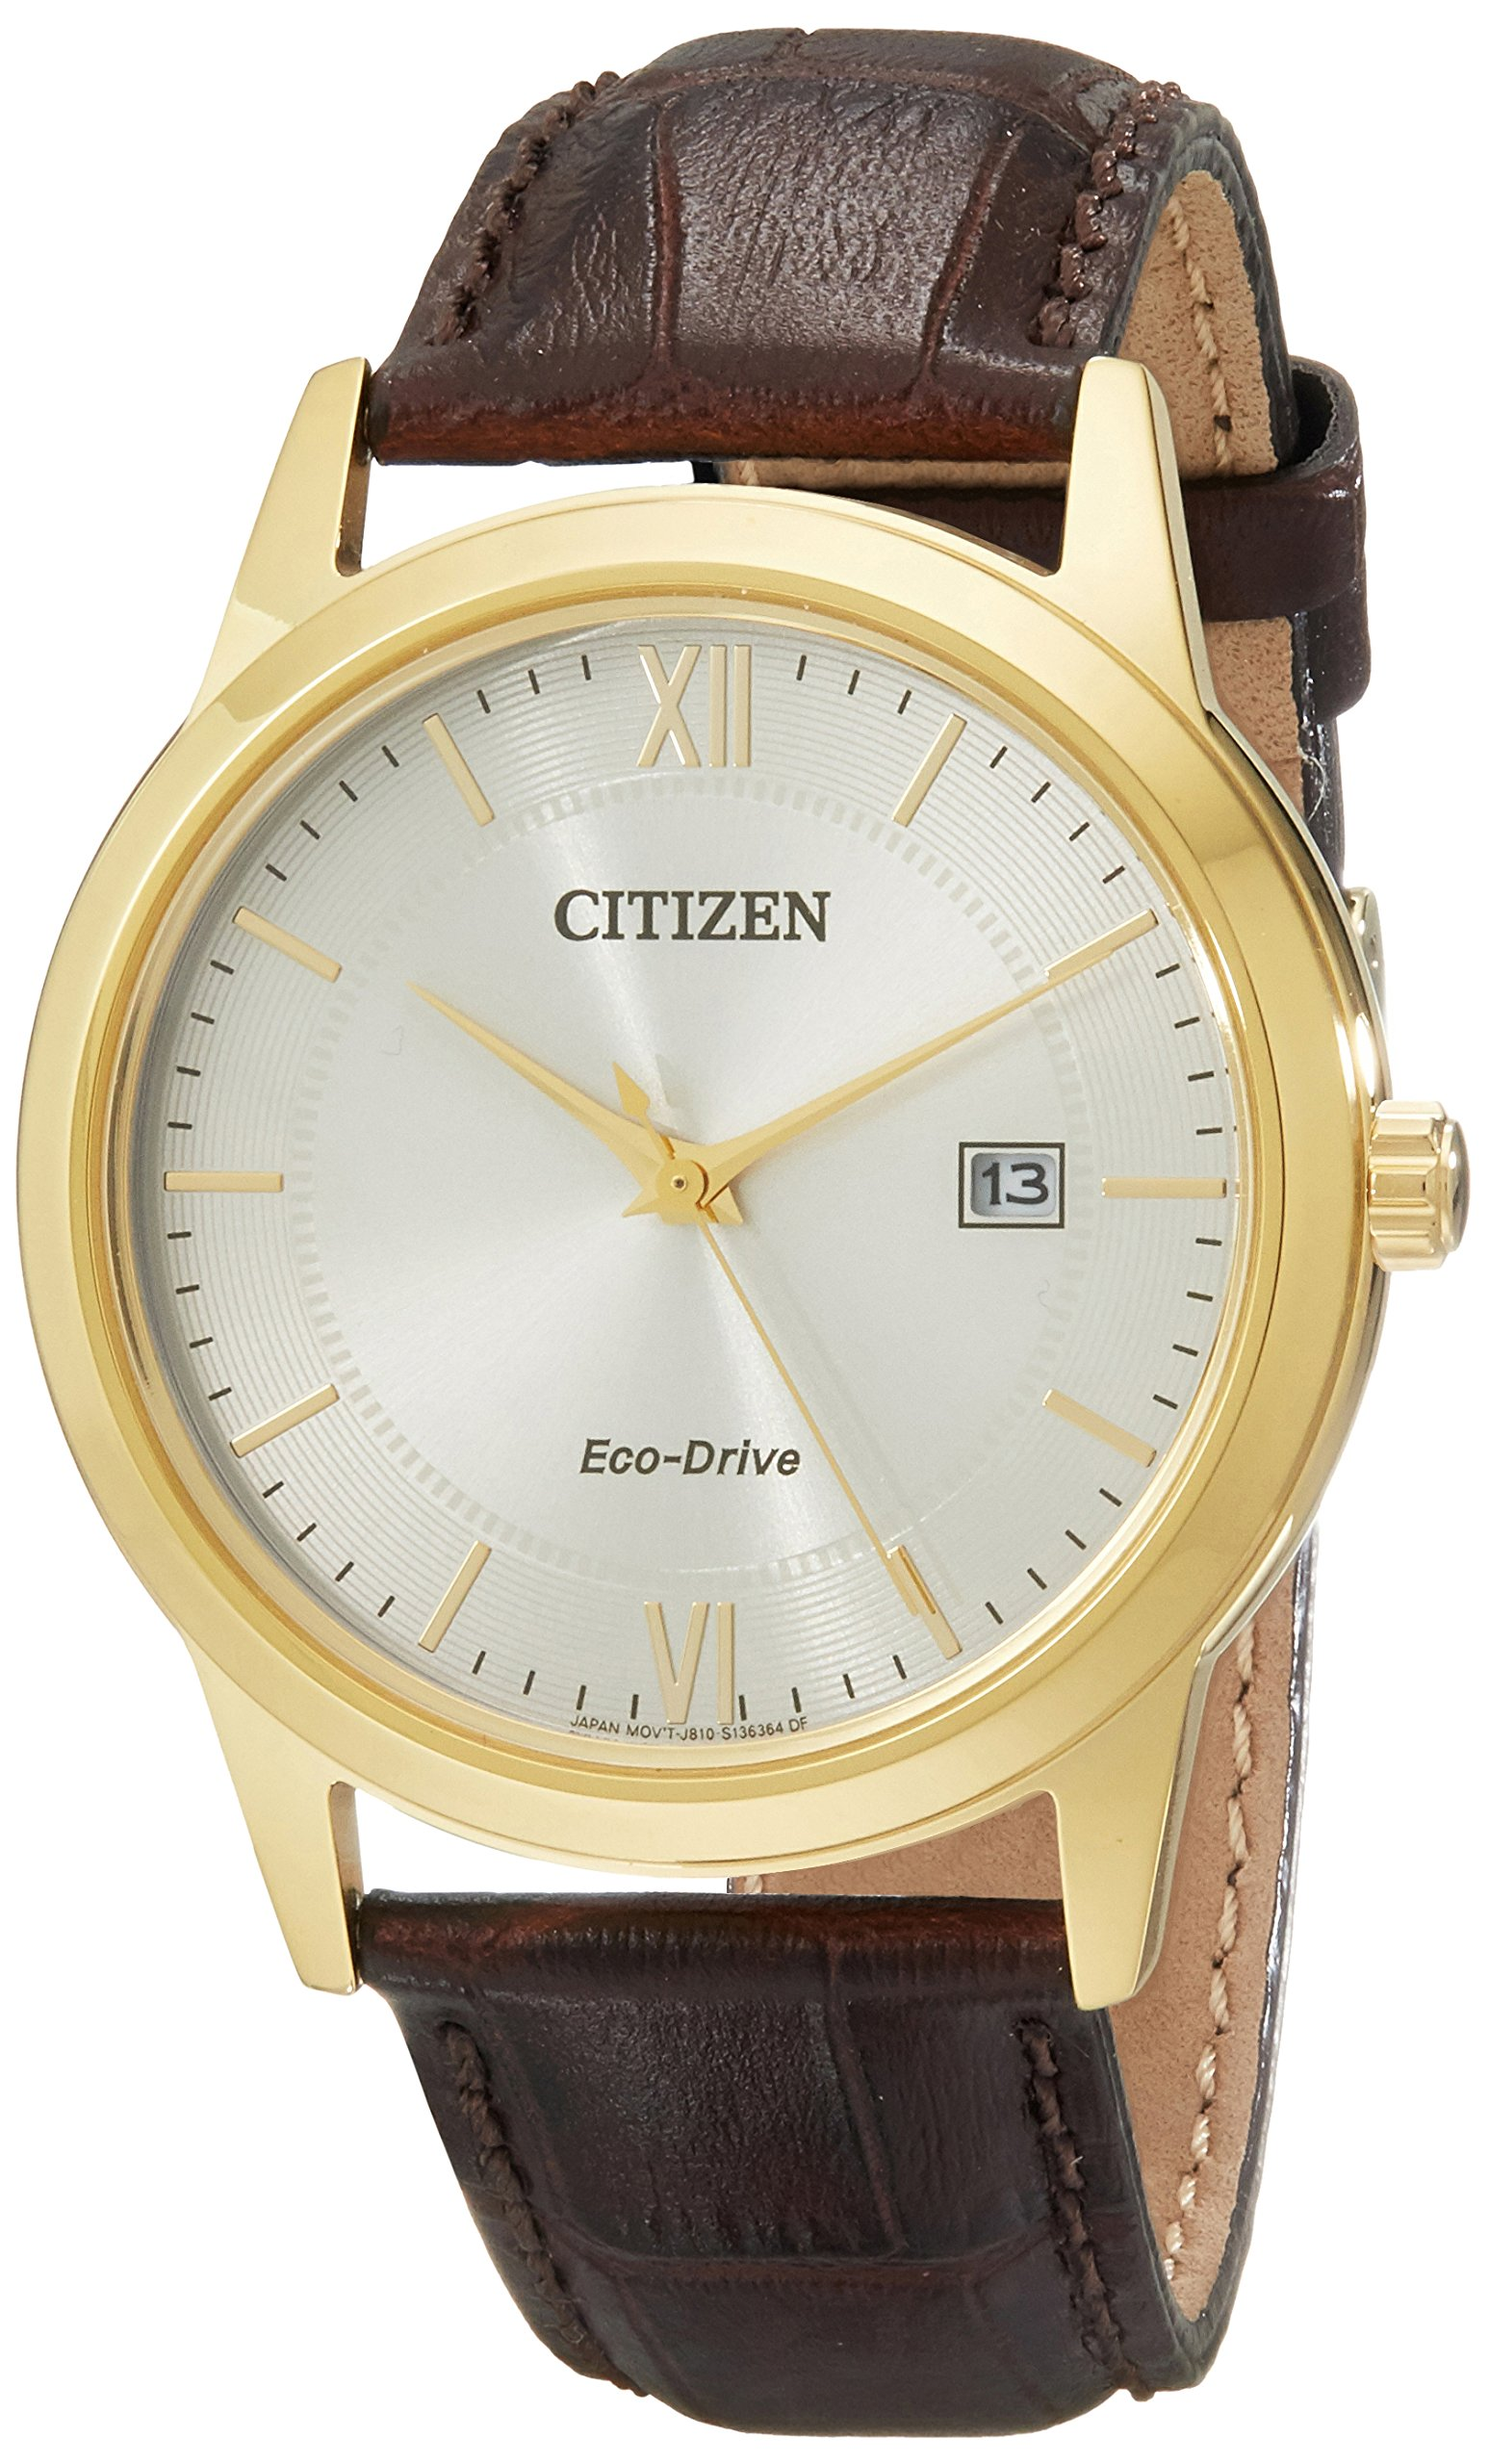 Men's Eco-Drive Stainless Steel Watch with Date, AW1232-04A